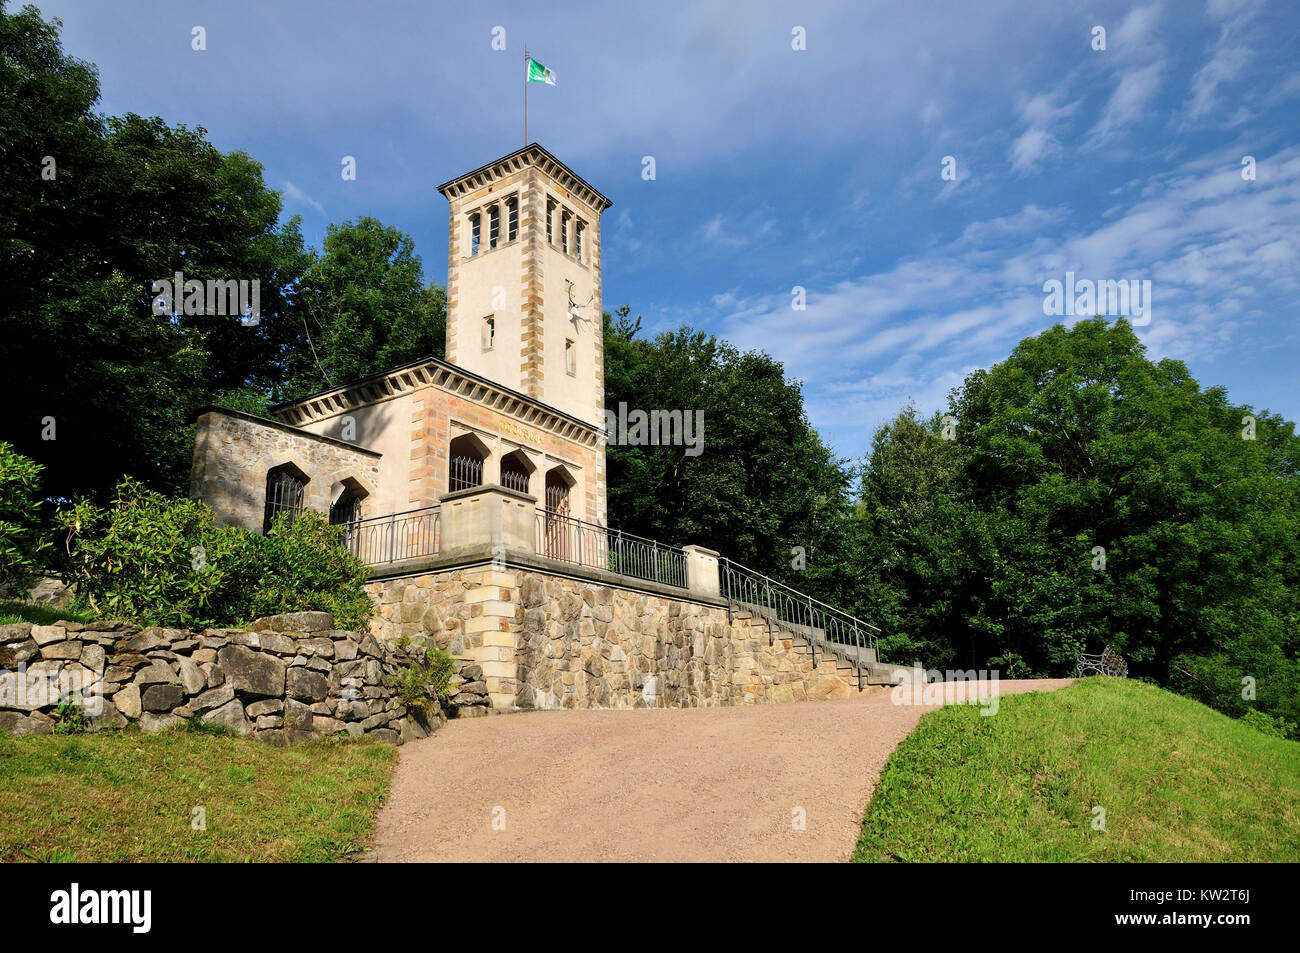 Observation tower on the castle mountain with smith's mountain, Osterzgebirge, Aussichtsturm auf dem Schlossberg - Stock Image